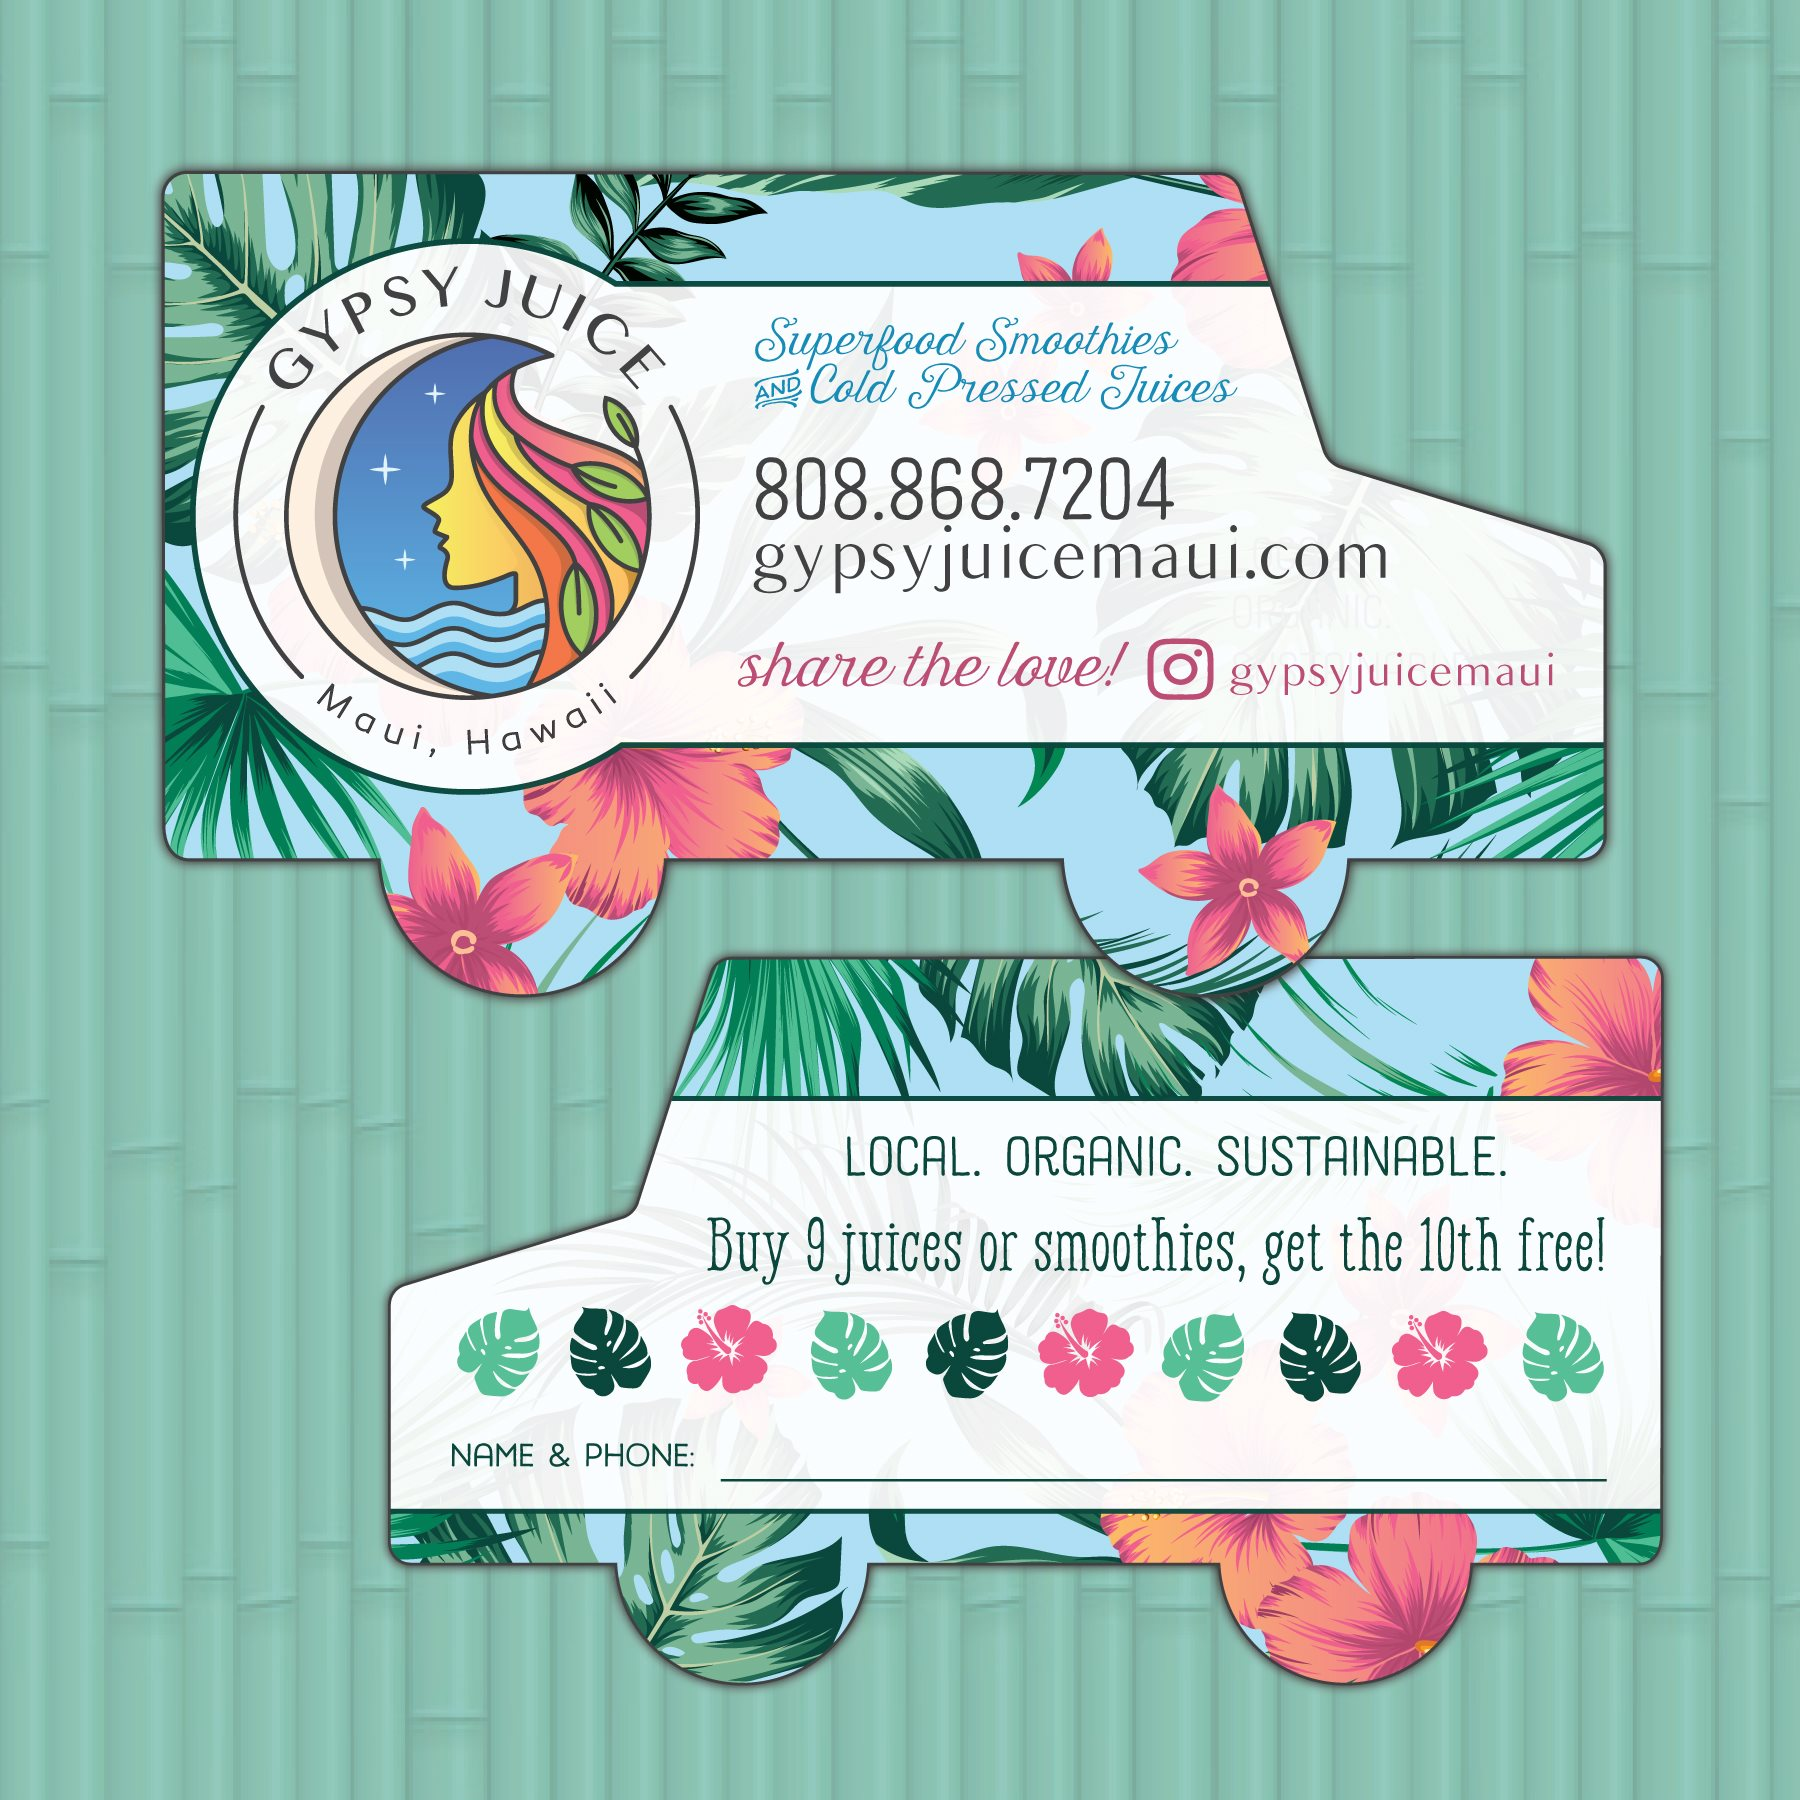 Gypsy Juice Maui - food truck shaped business cards